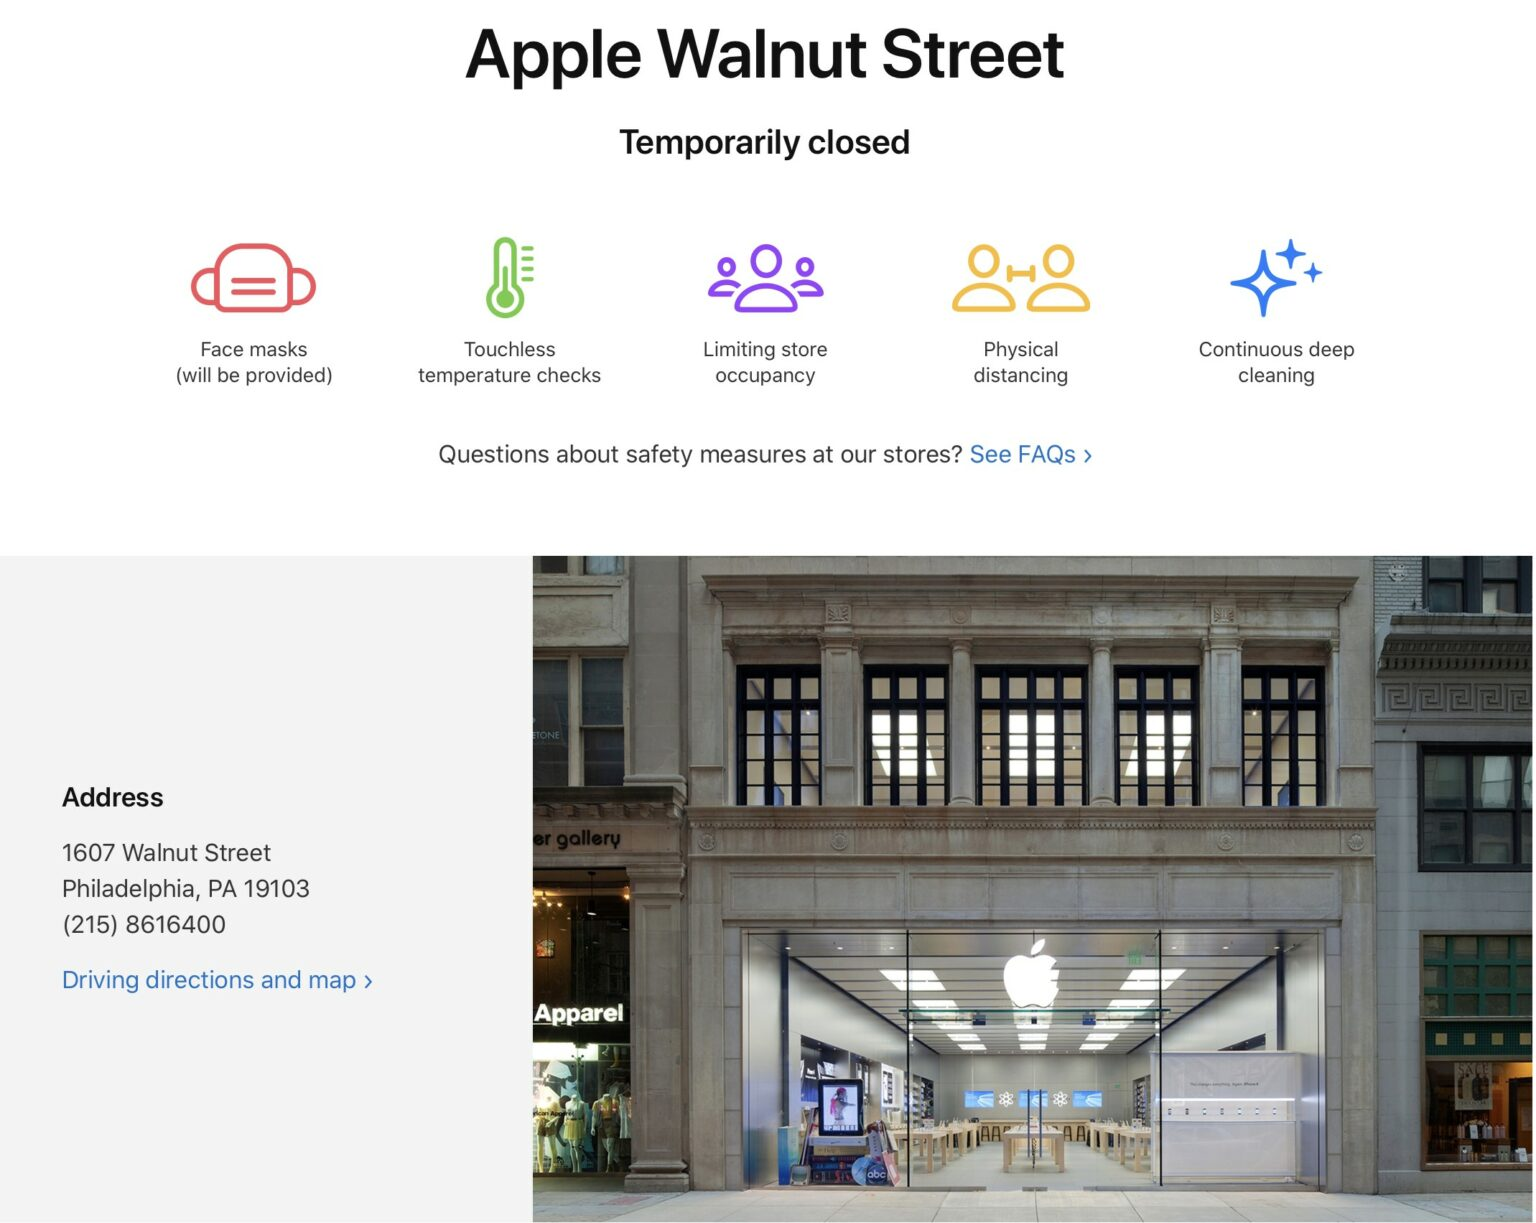 Apple Store temporarily closed.